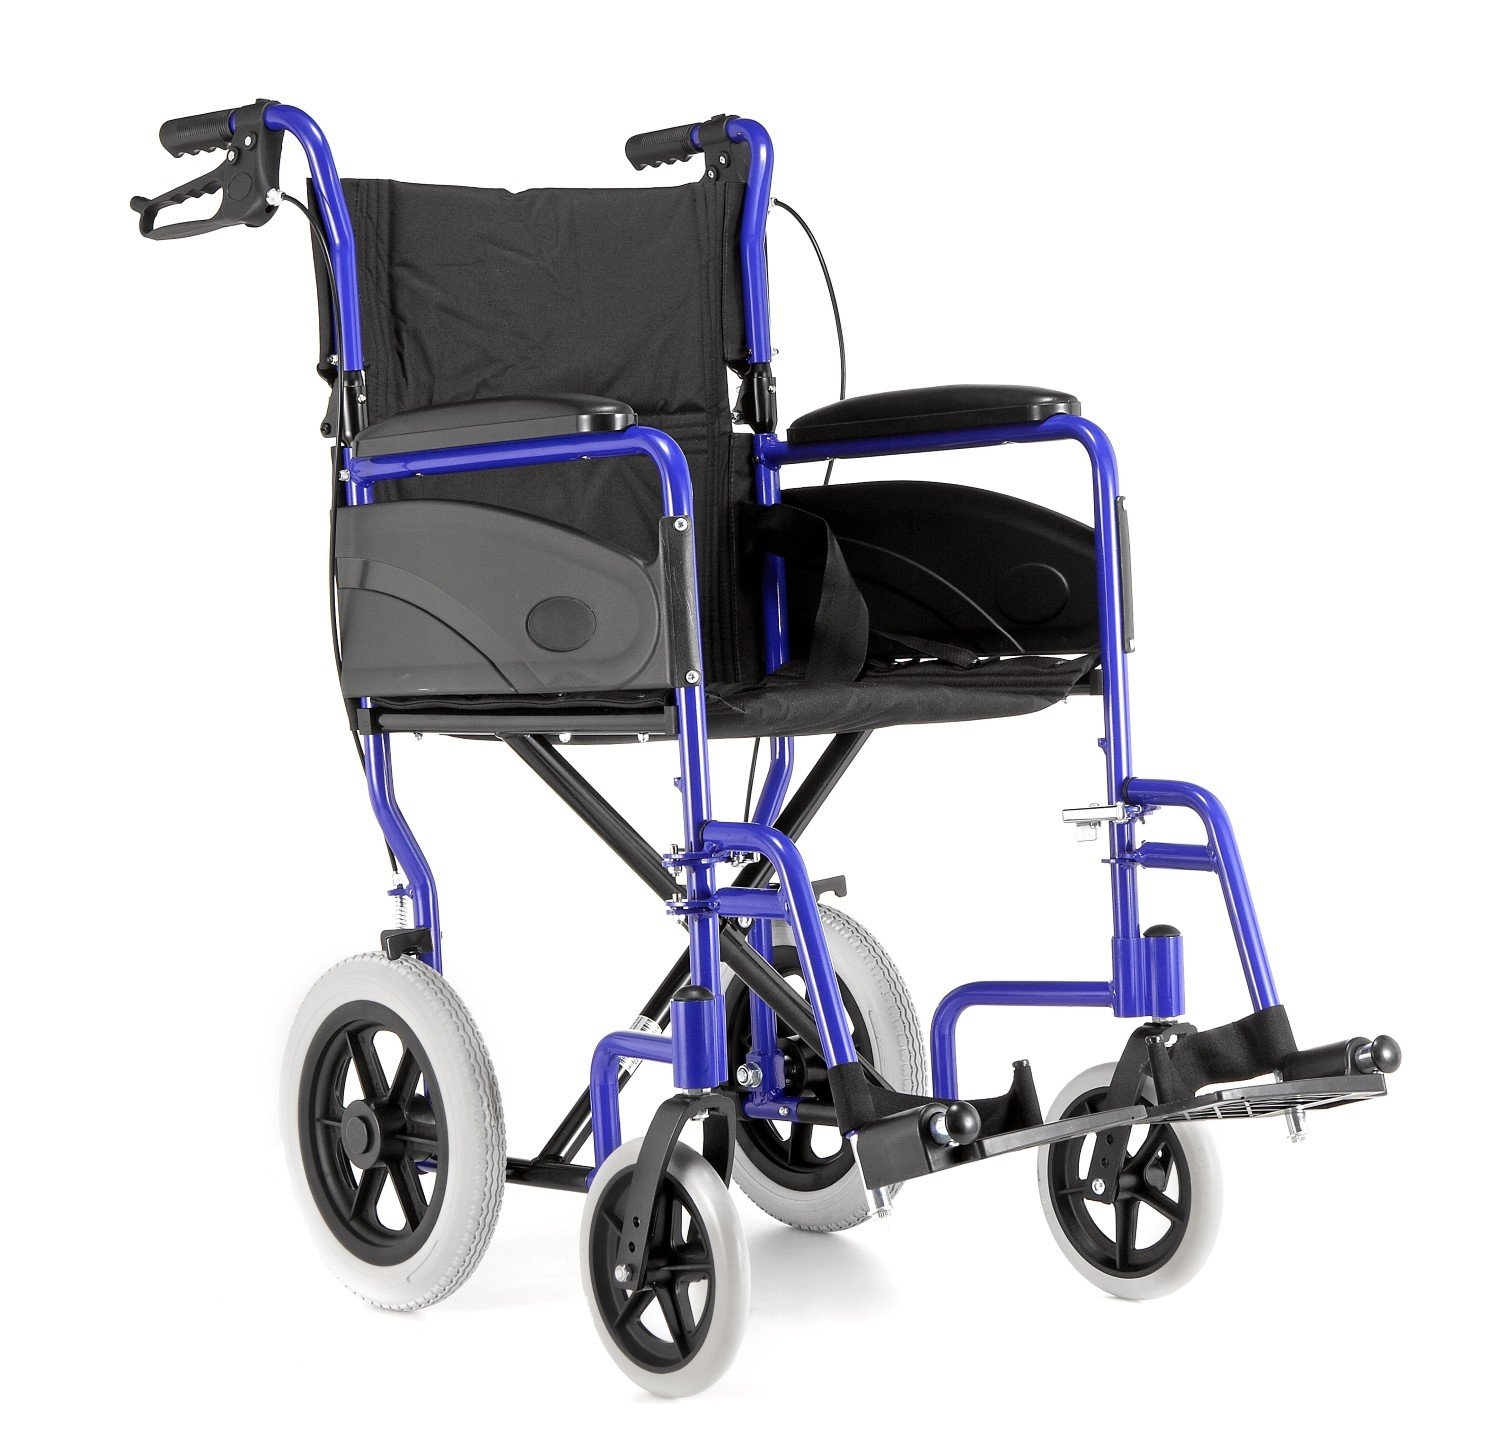 Dash Express Ultra Lightweight Folding Attendant Propelled Wheelchair  sc 1 st  Theramedic & Best Lightweight Manual Wheelchairs in UK 2018